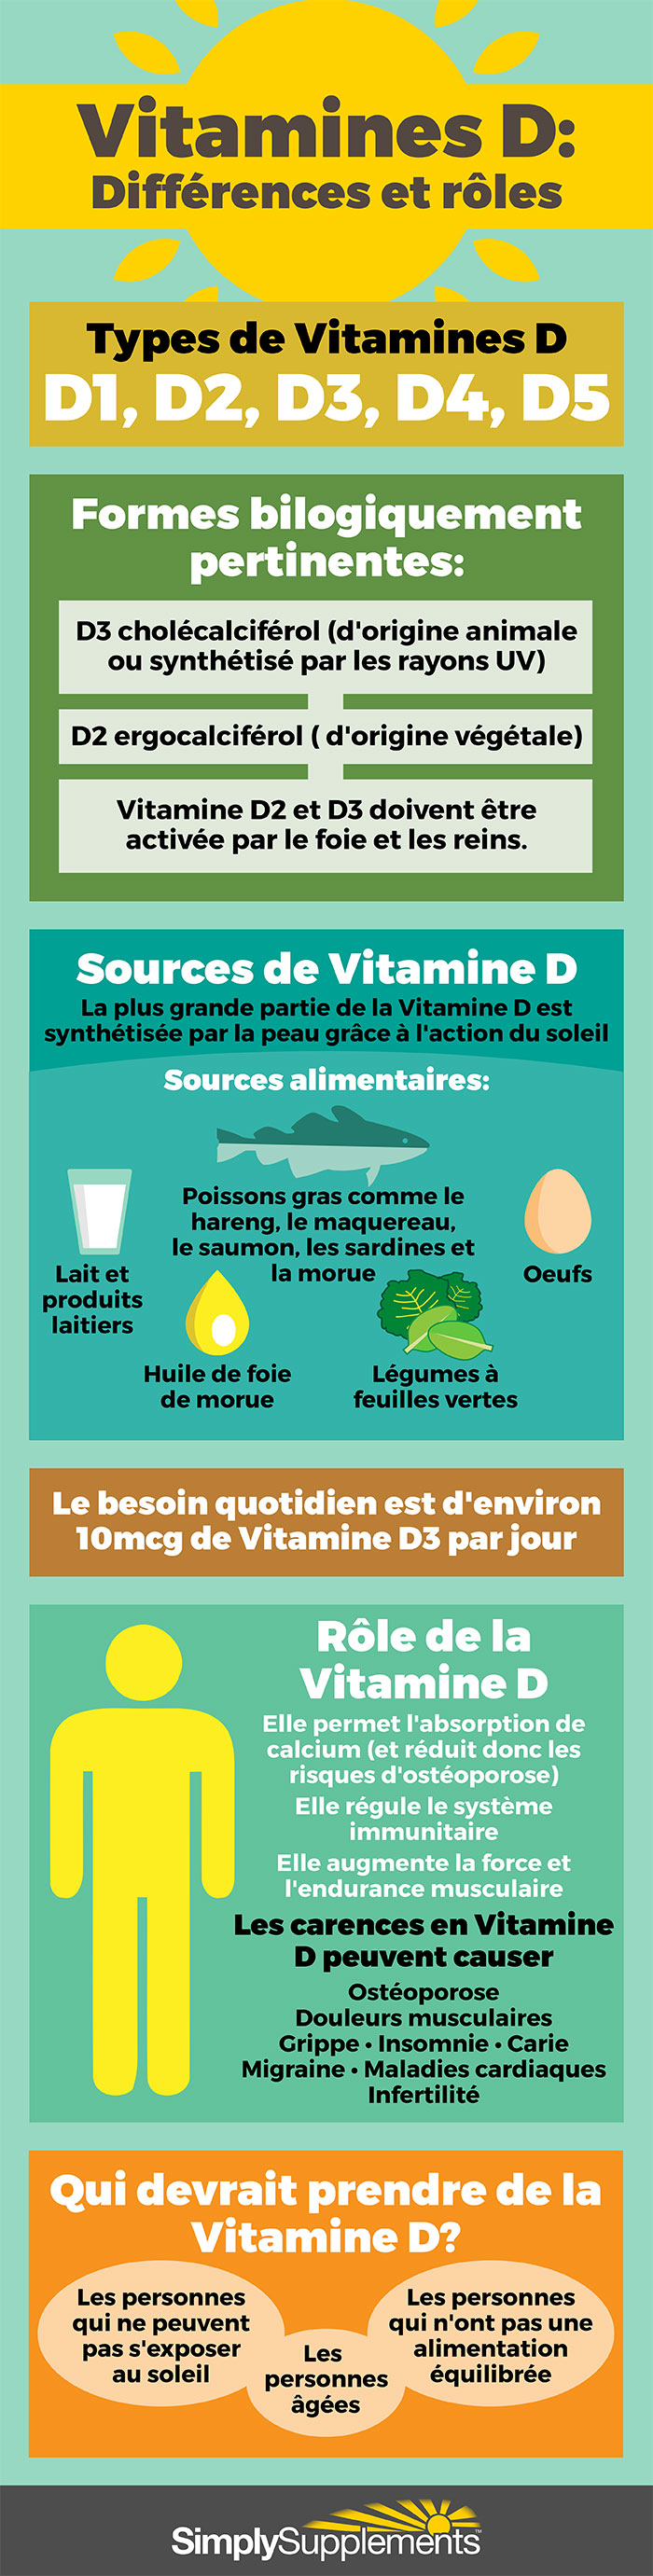 vitamines-d-difference-et-role